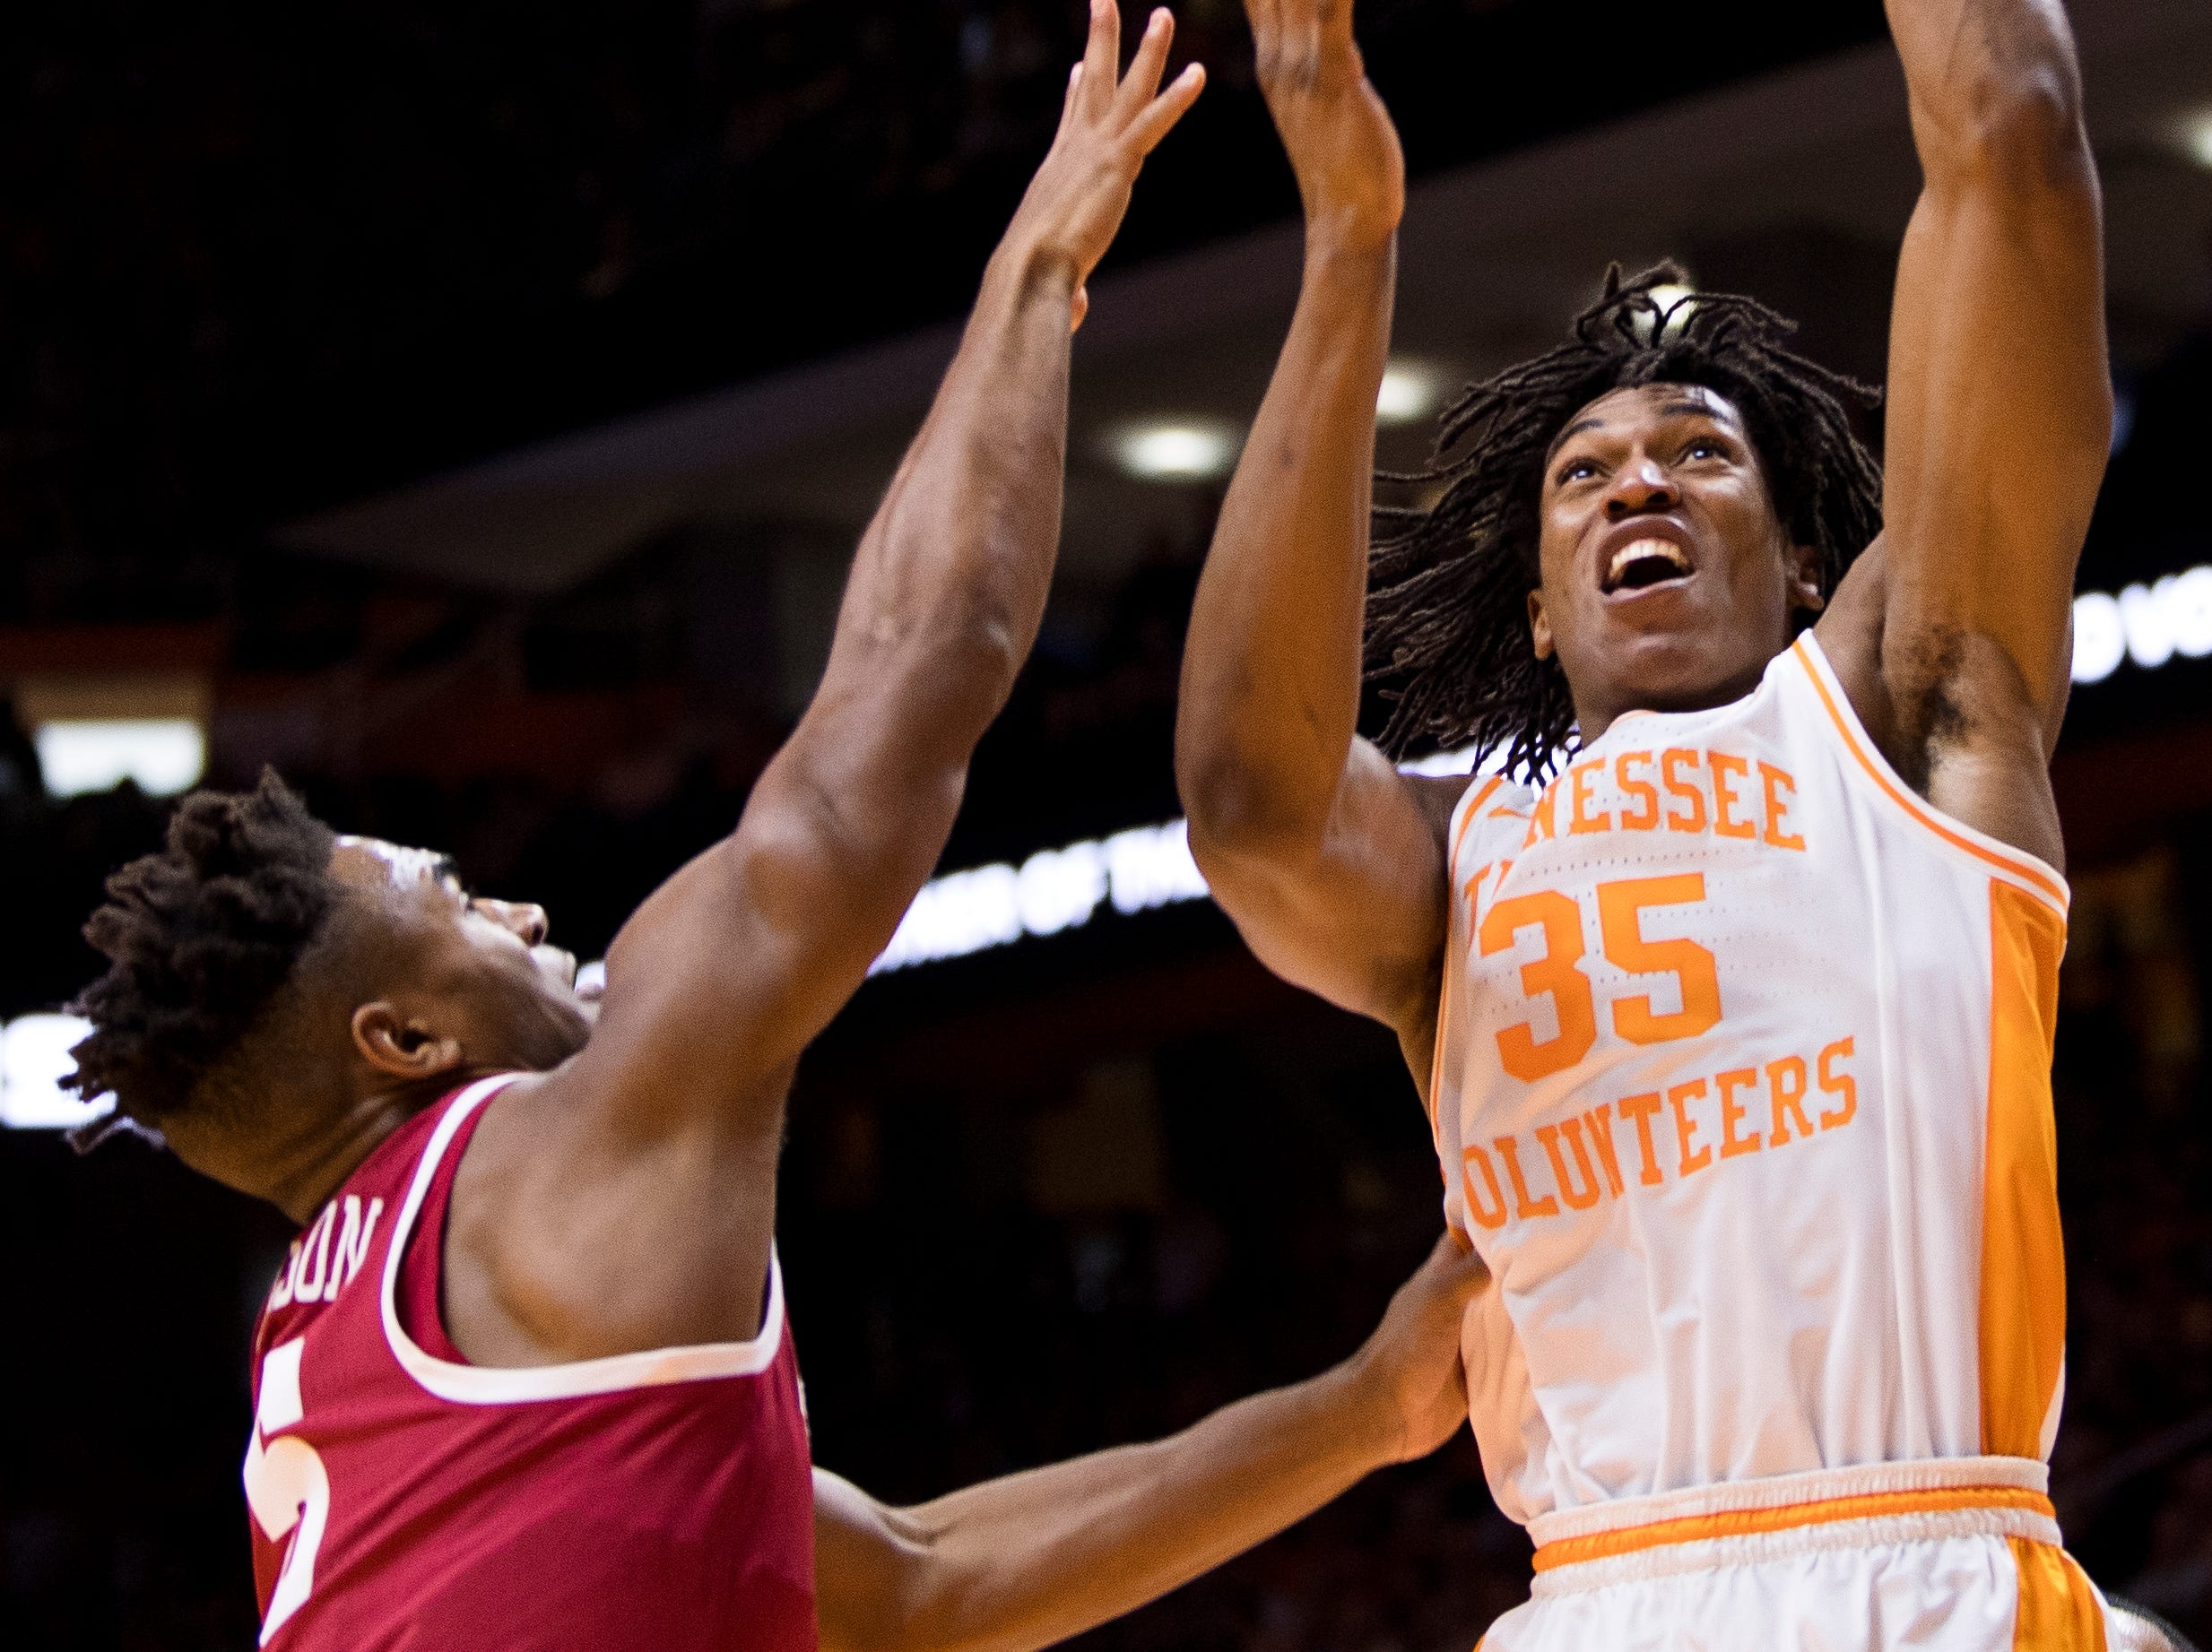 Tennessee guard/forward Yves Pons (35) attempts a shot during the first half of Tennessee's home SEC conference game against Alabama at Thompson-Boling Arena in Knoxville on Saturday, January 19, 2019.